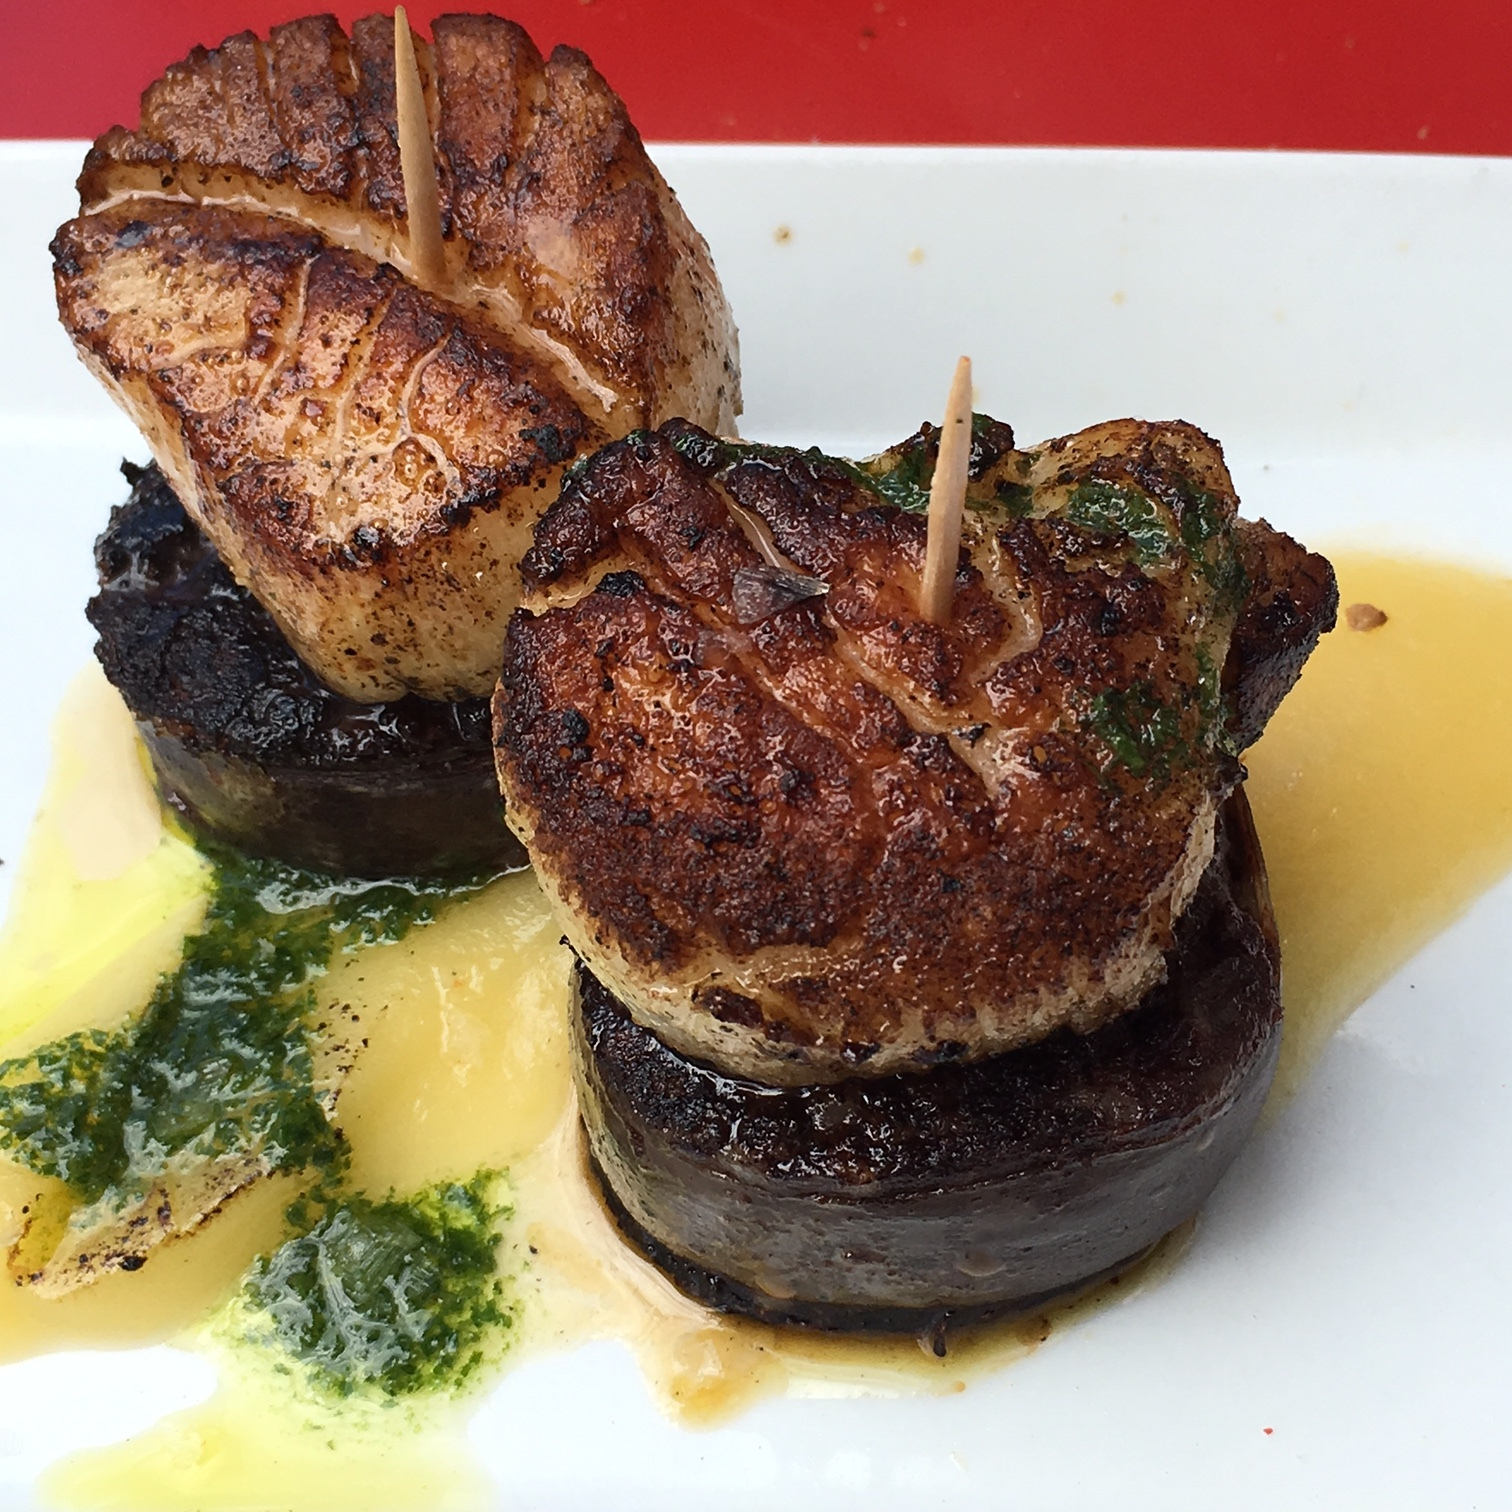 Scallops with morcilla. Delicieux!